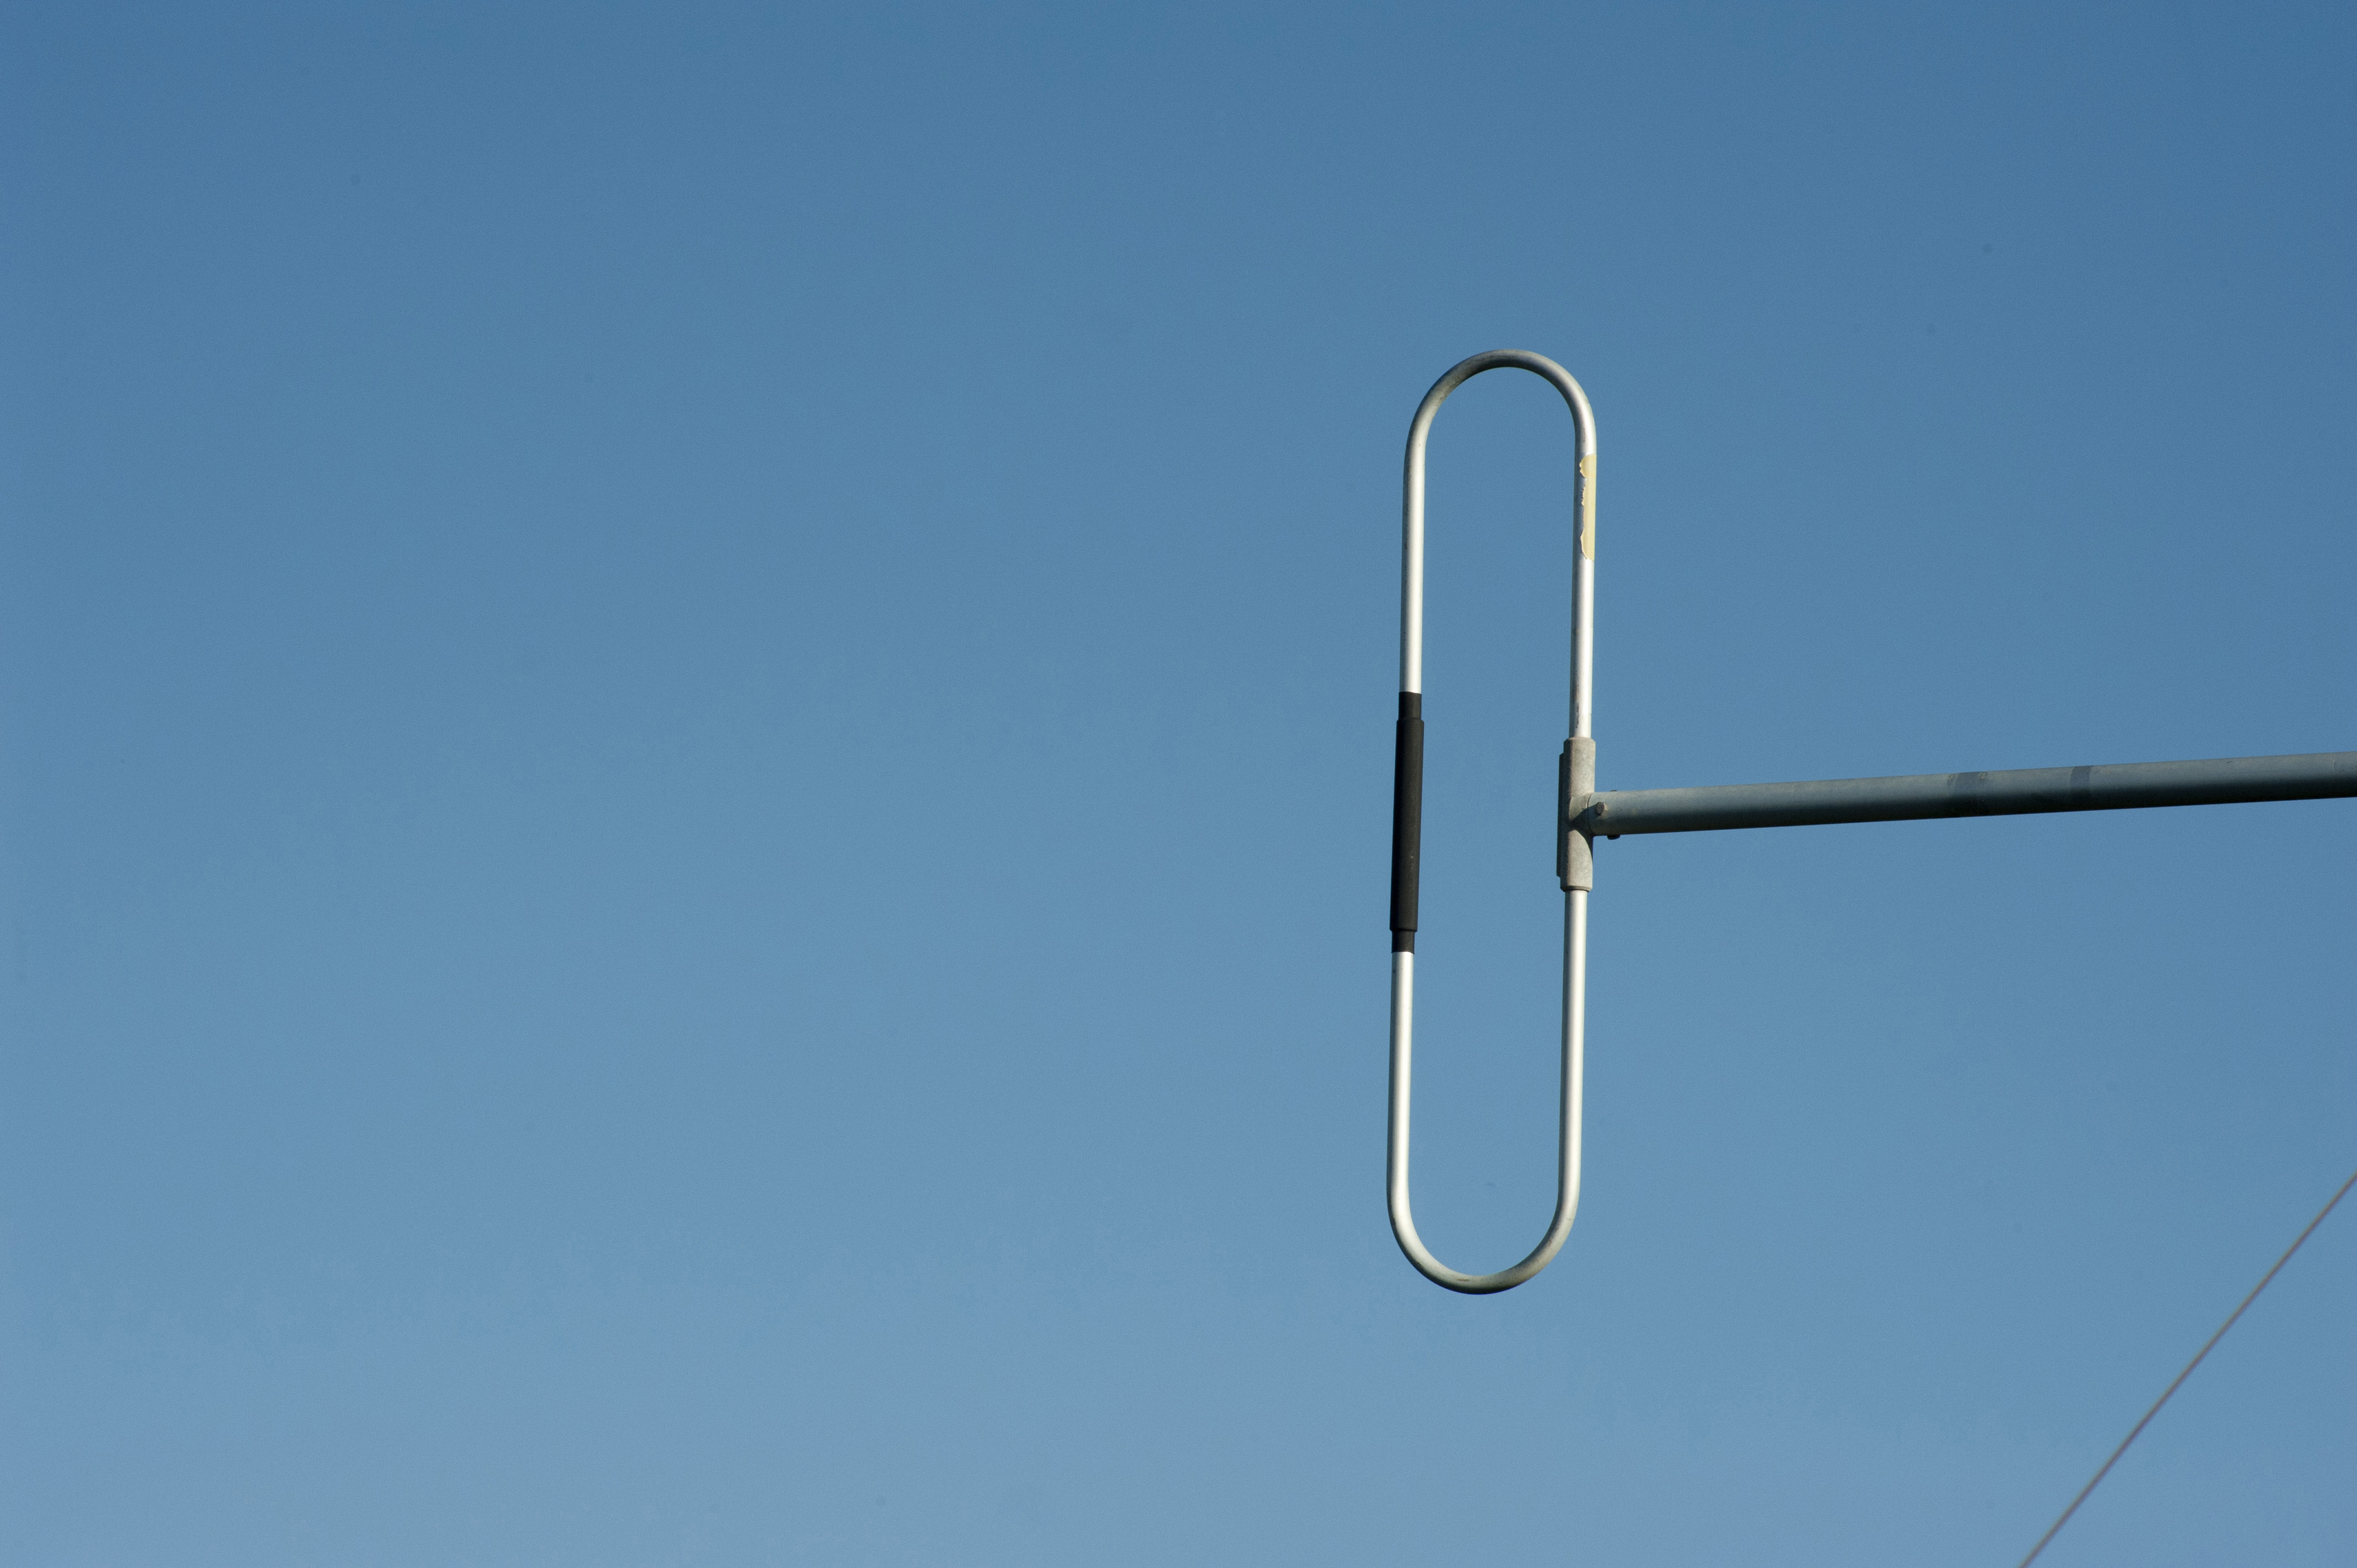 Dipole aerial metallic antenna used in radio and telecommunications, against a clear blue sky